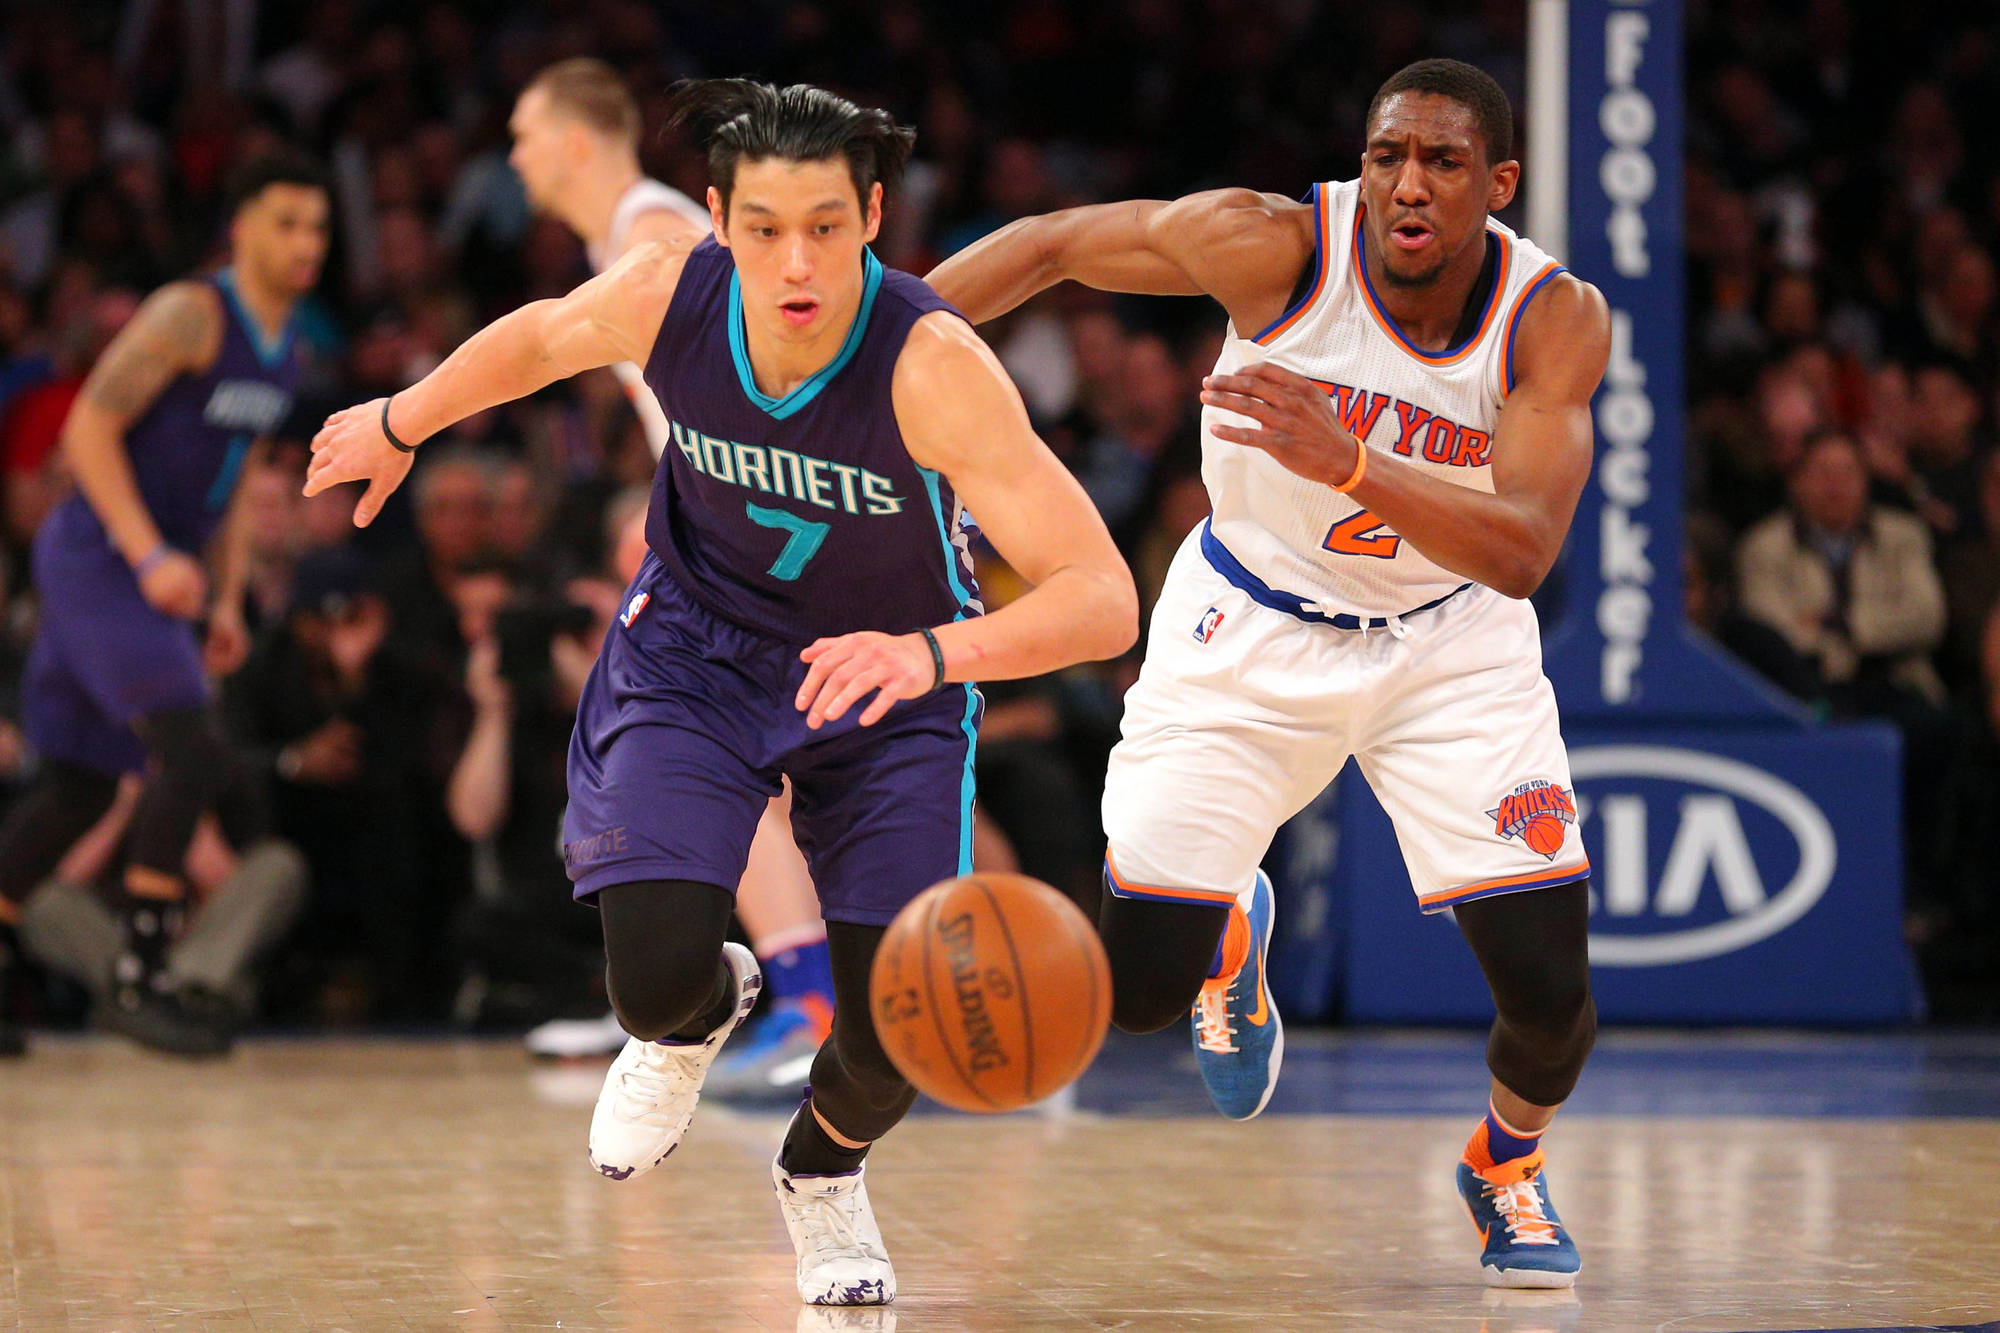 Nothing But Nets: Linsanity Returns to New York